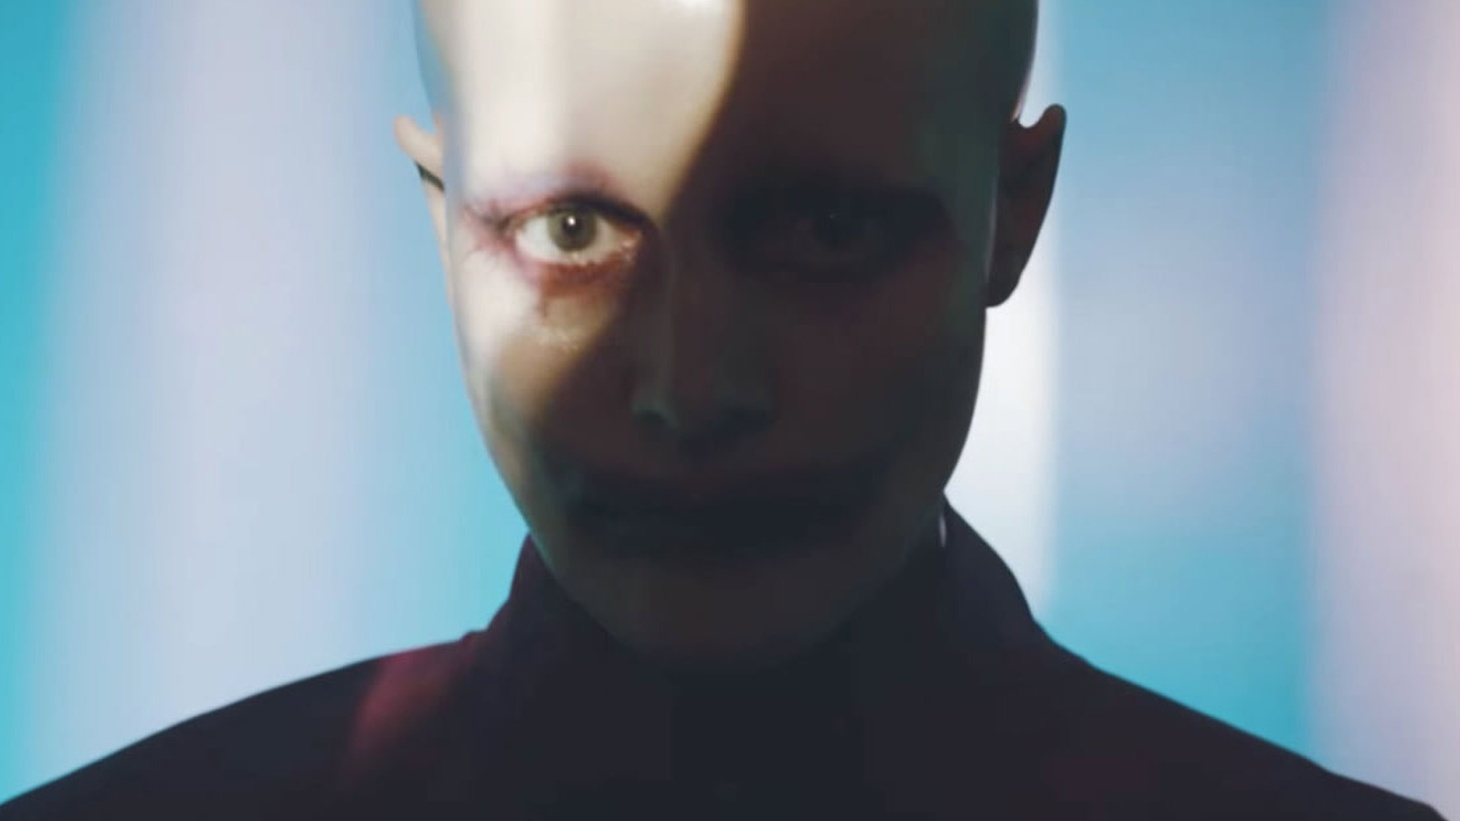 Karin Dreijer, half of the electronic duo The Knife, is back after eight years with new work as Fever Ray.